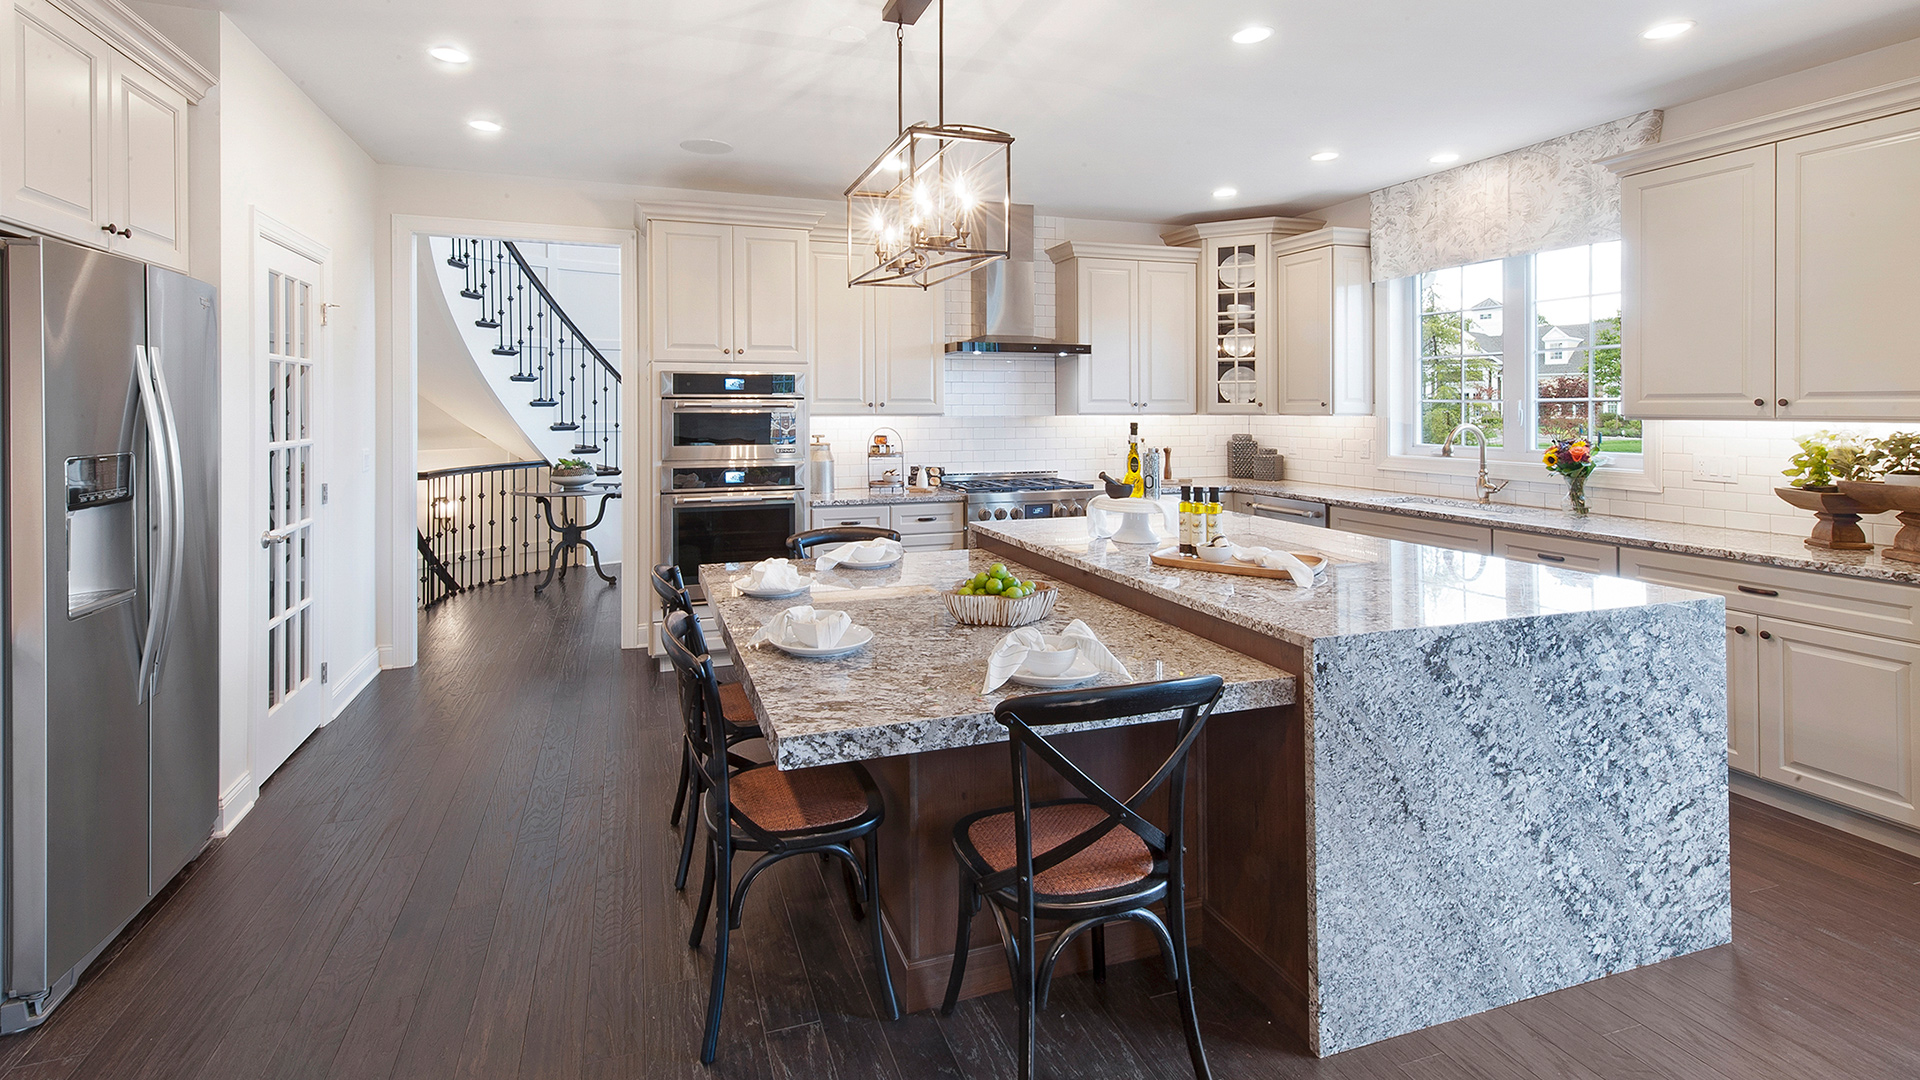 The stylish kitchen features name-brand appliances and granite countertops.